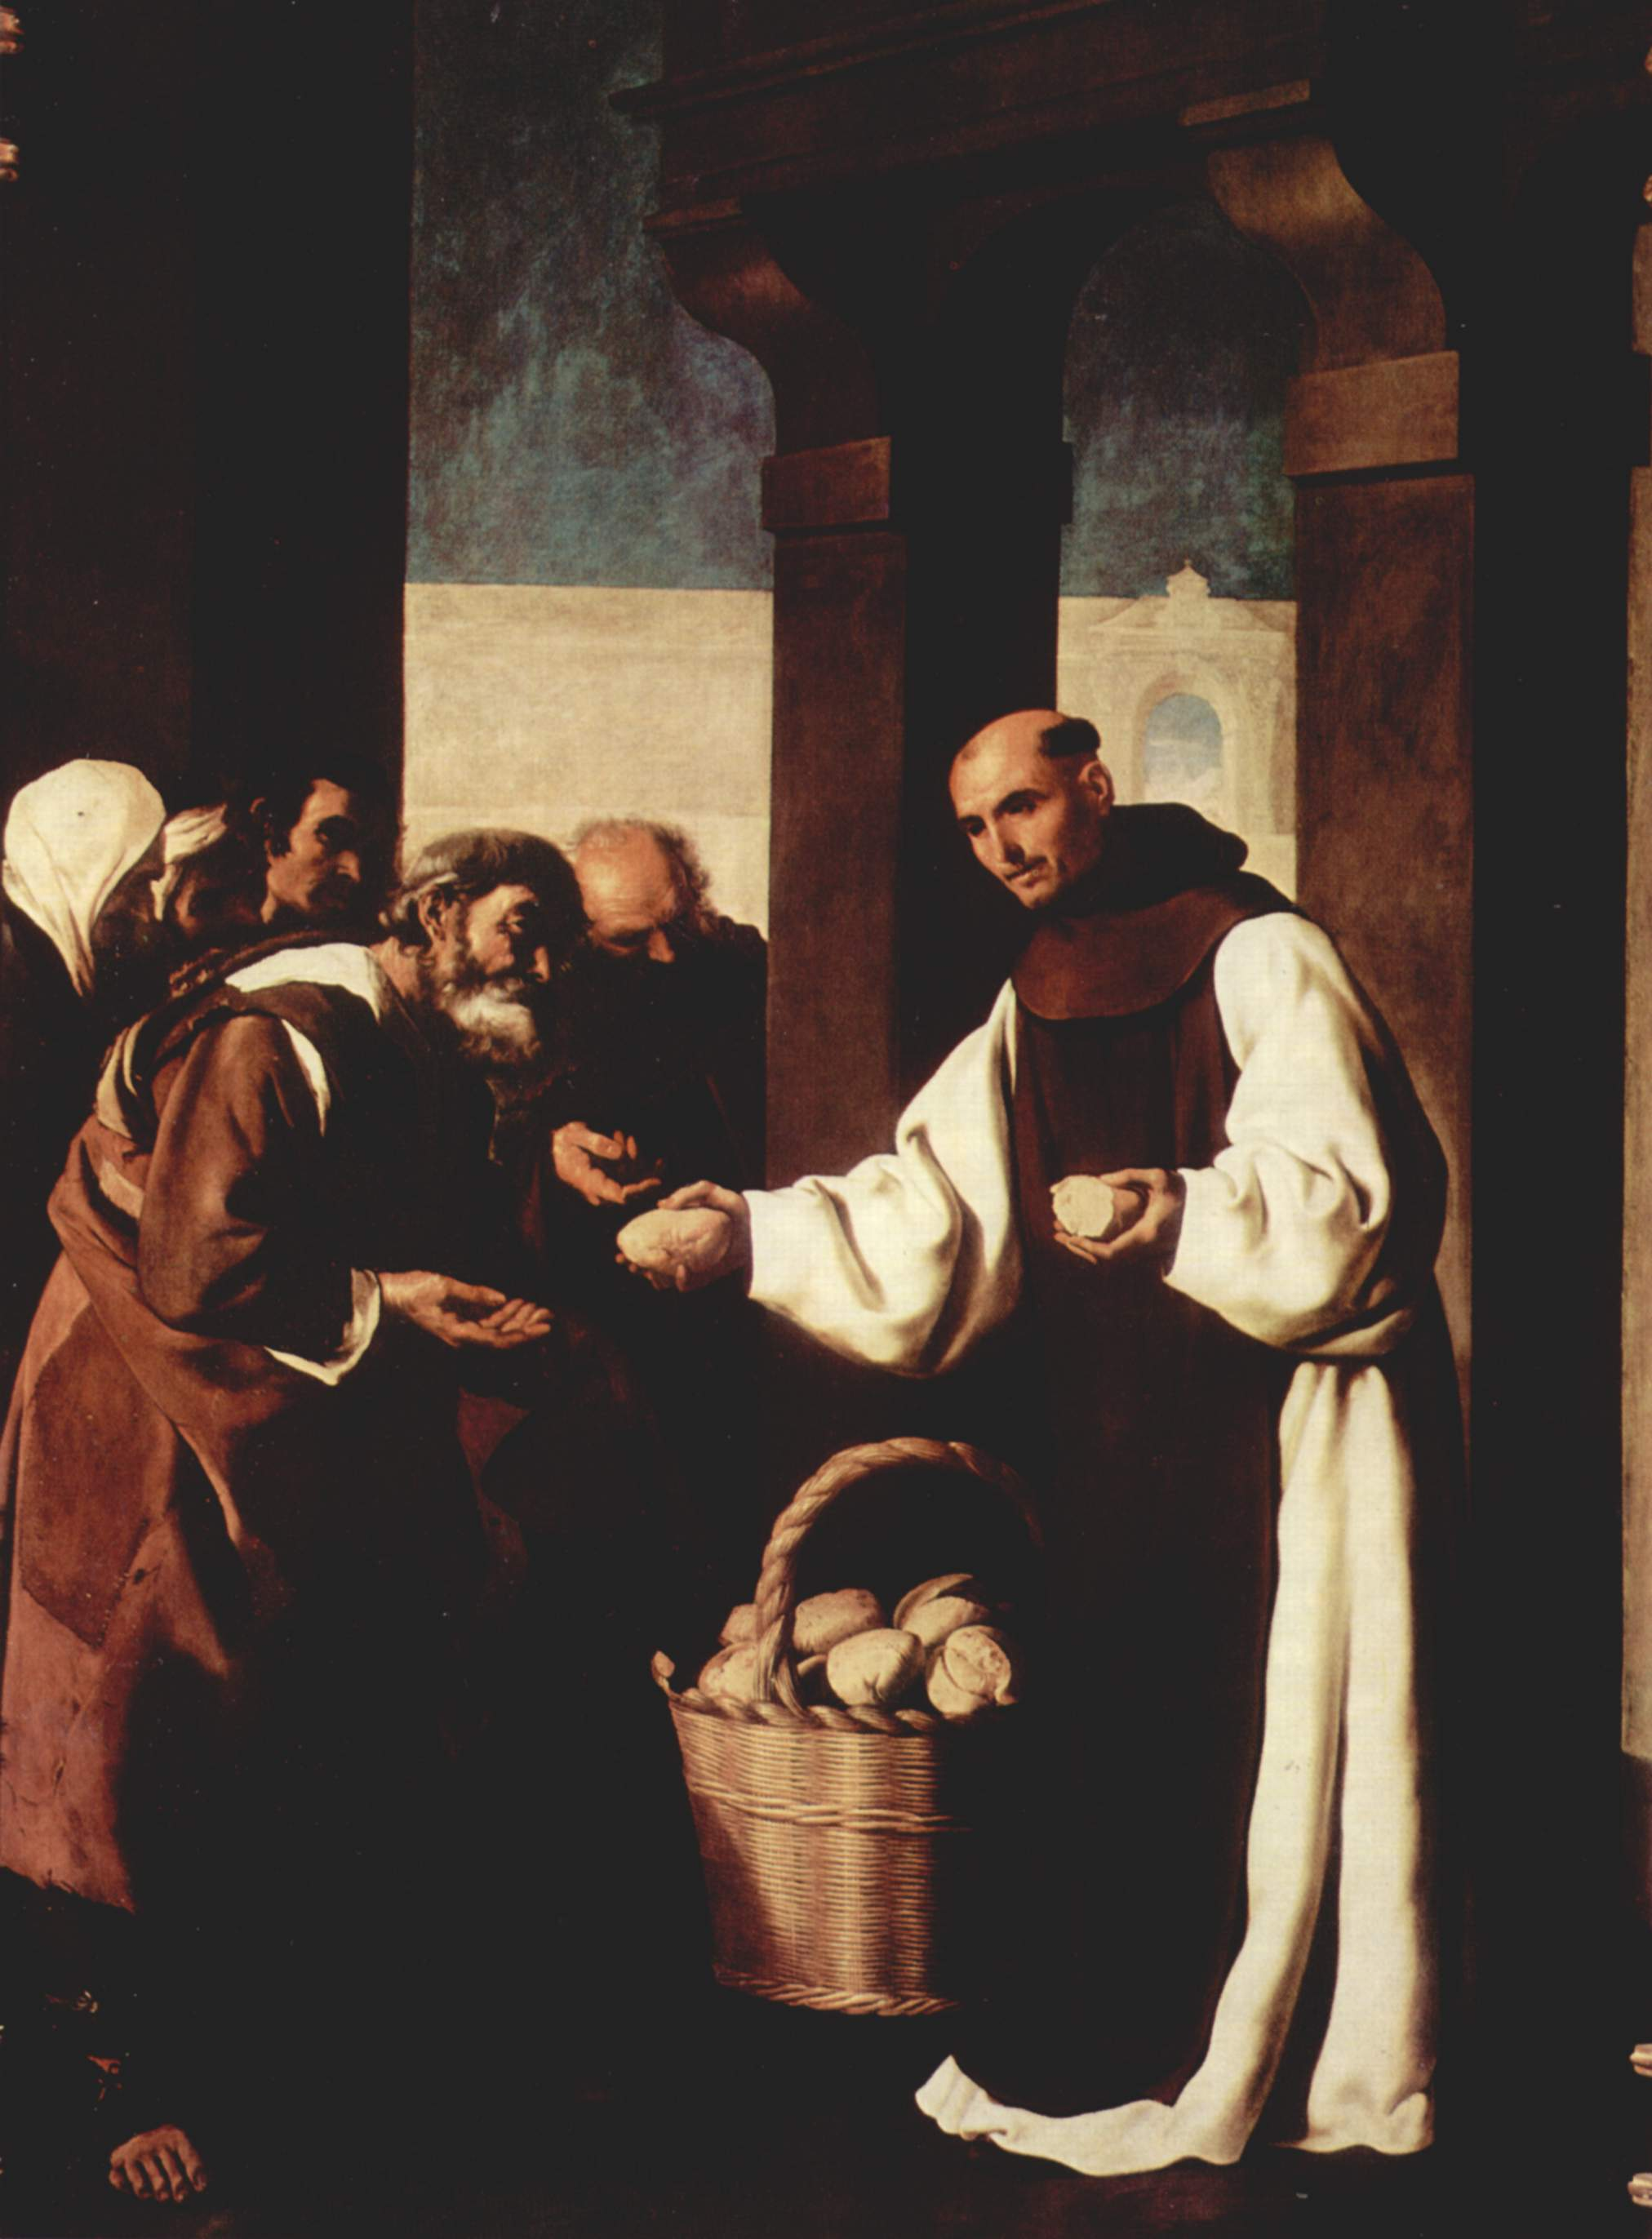 http://upload.wikimedia.org/wikipedia/commons/d/d1/Francisco_de_Zurbar%C3%A1n_019.jpg